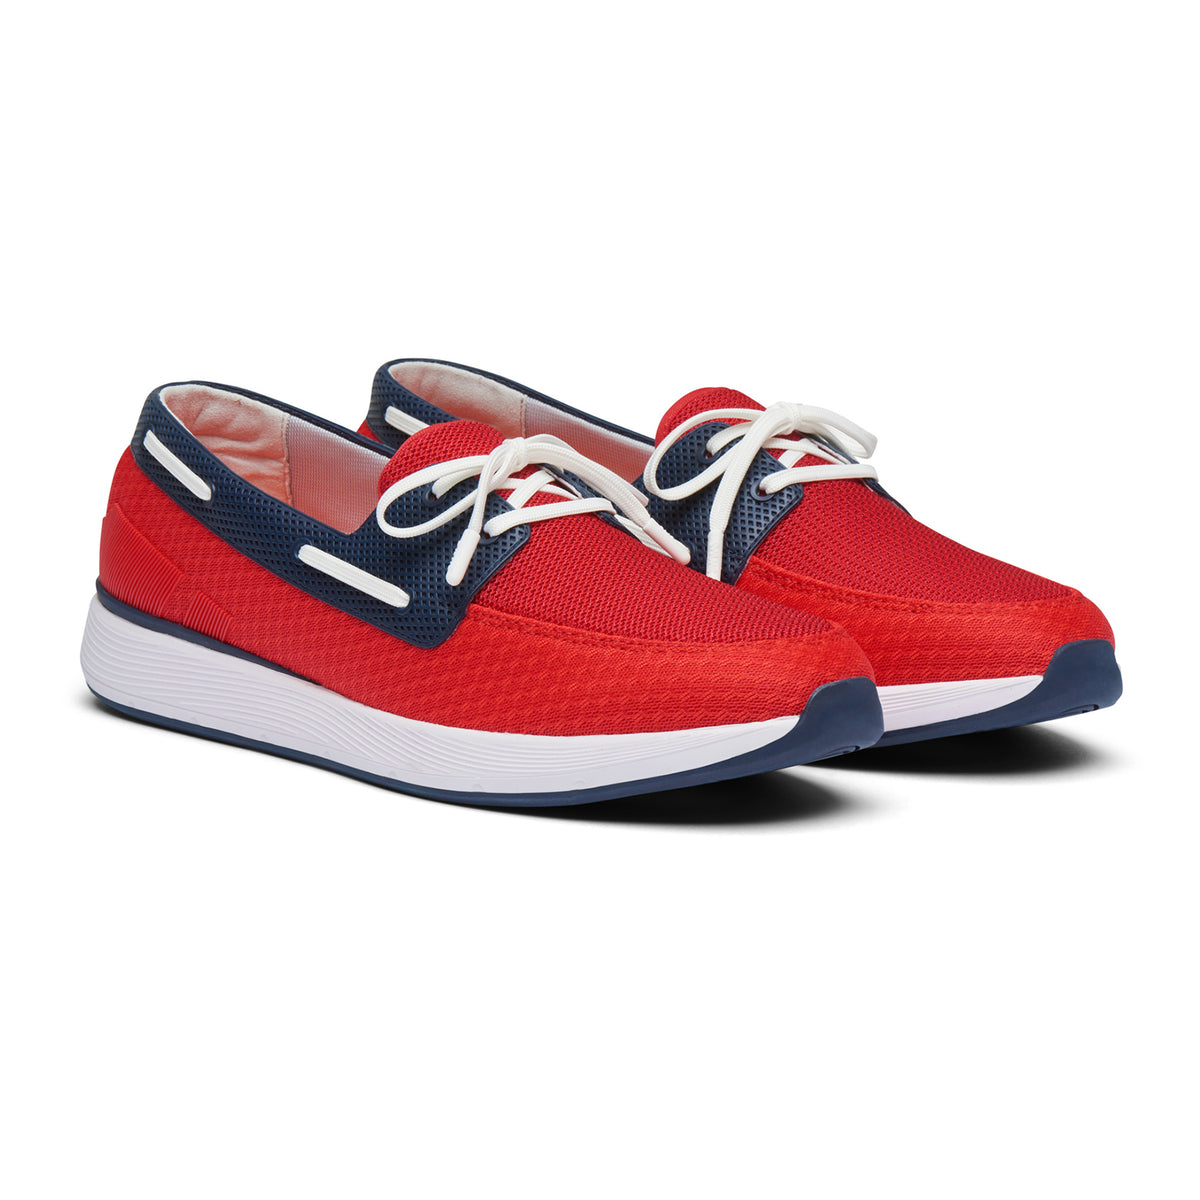 Breeze Wave Boat - background::white,variant::Red Alert/Navy